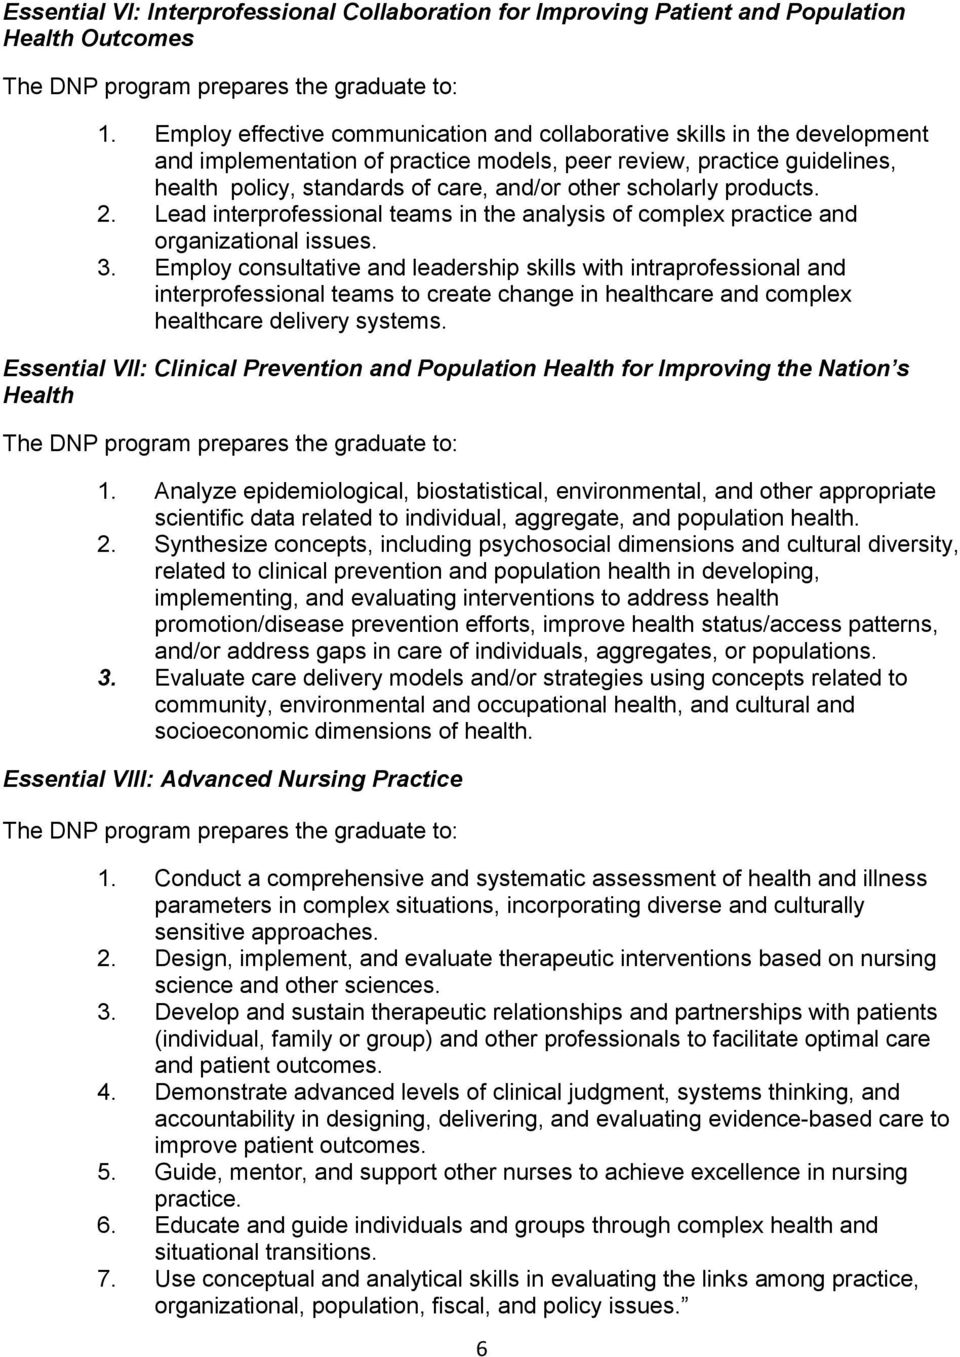 scholarly products. 2. Lead interprofessional teams in the analysis of complex practice and organizational issues. 3.